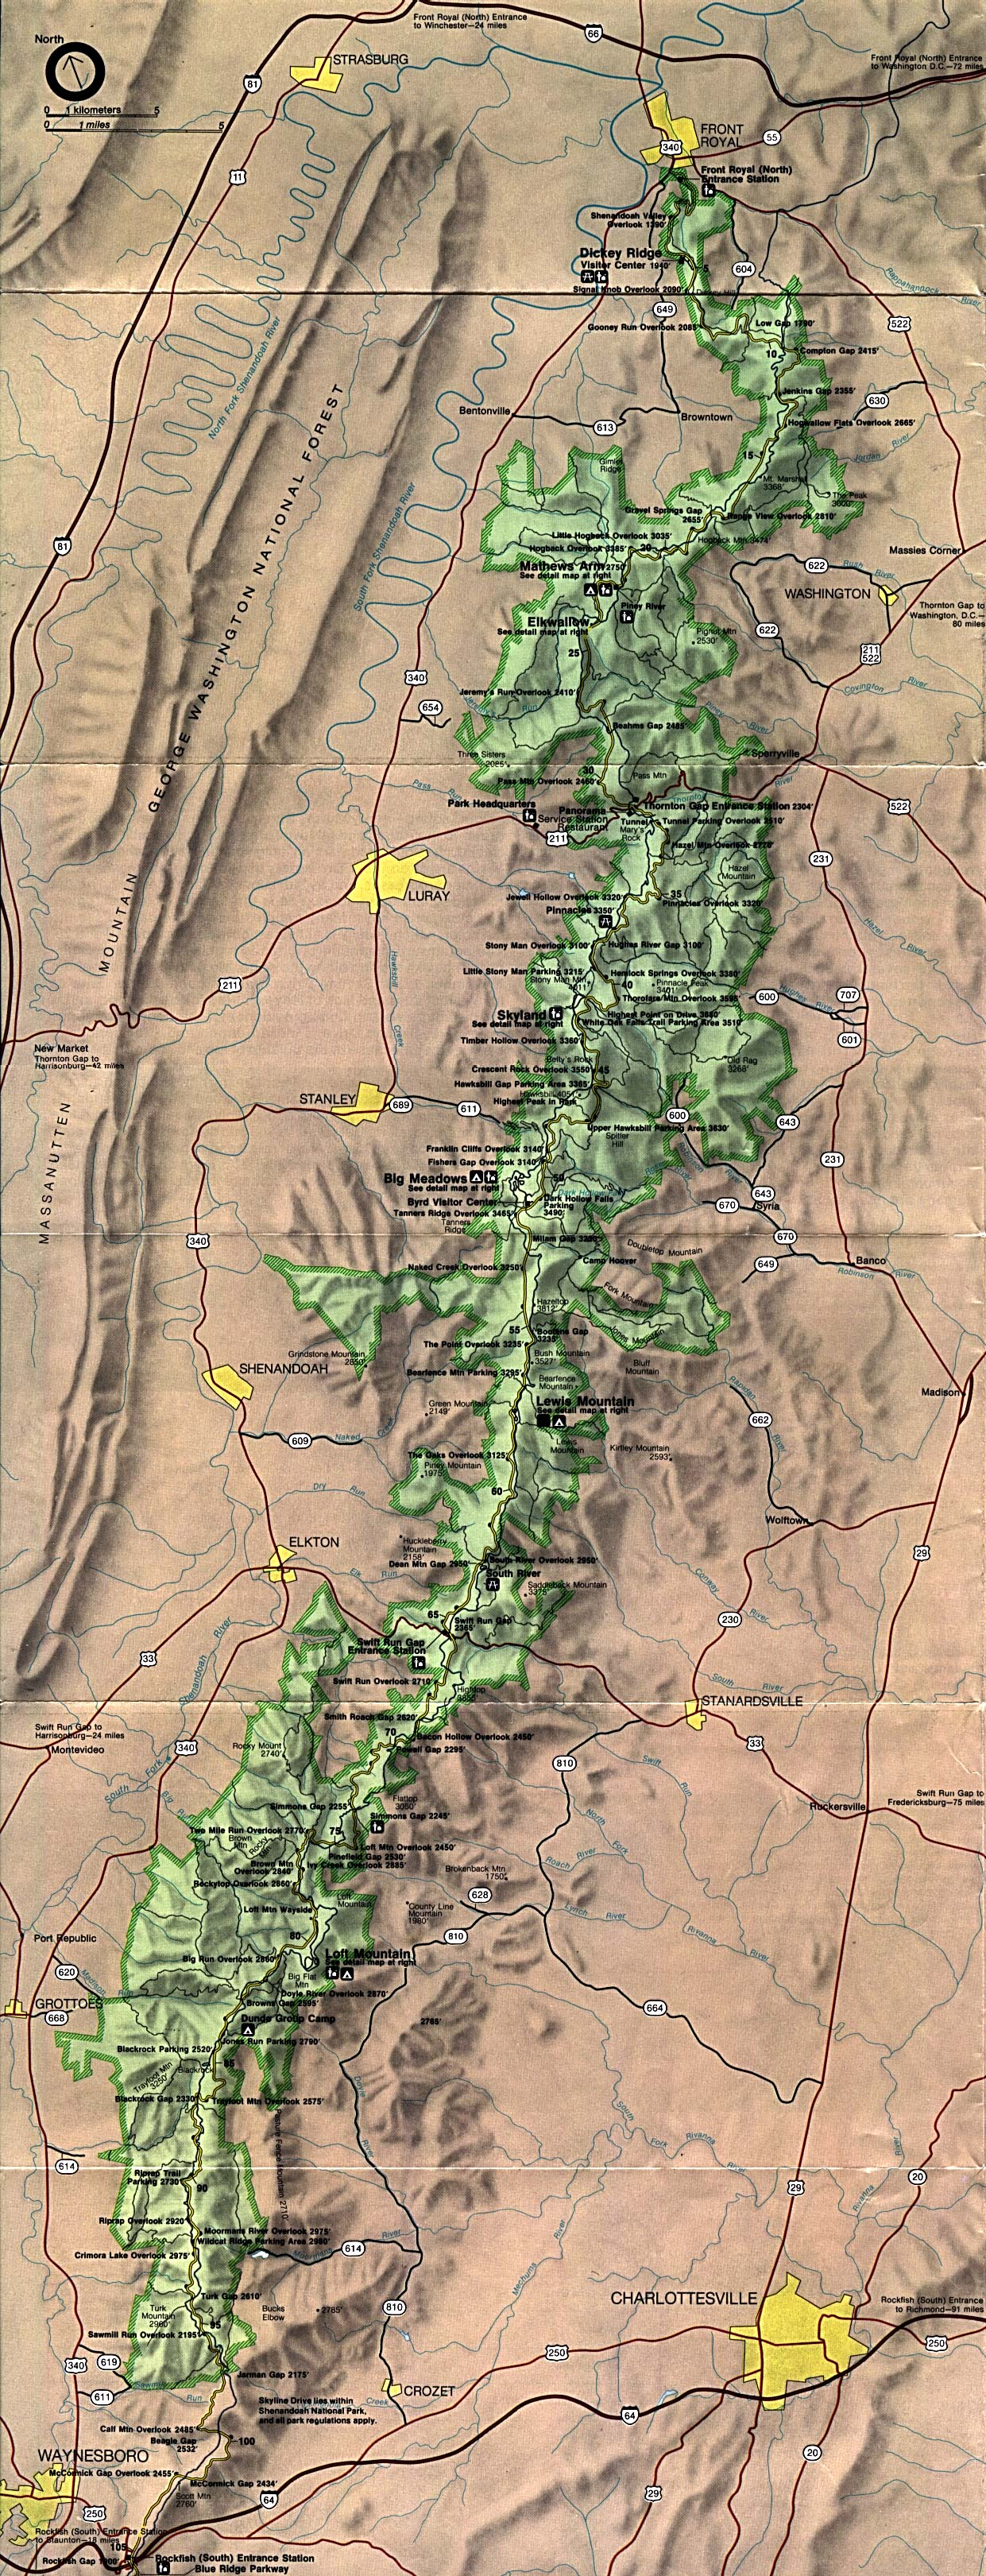 Virginia Maps - Perry-Castañeda Map Collection - UT Liry ... on columbia river gorge national scenic area map, cowans gap state park map, shenandoah valley map, the catskill mountains map, denali national park and preserve map, new river state park trail map, harpers ferry hiking trail map, sleeping bear dunes national lakeshore map, pine grove furnace state park map, redwood national and state parks map, virginia map, yosemite national park trail map, shenandoah river map, poinsett state park map, sequoia national park map, skyline drive map, kings canyon national park map, george washington national forest map, katmai national park and preserve map, cuyahoga valley national park map,